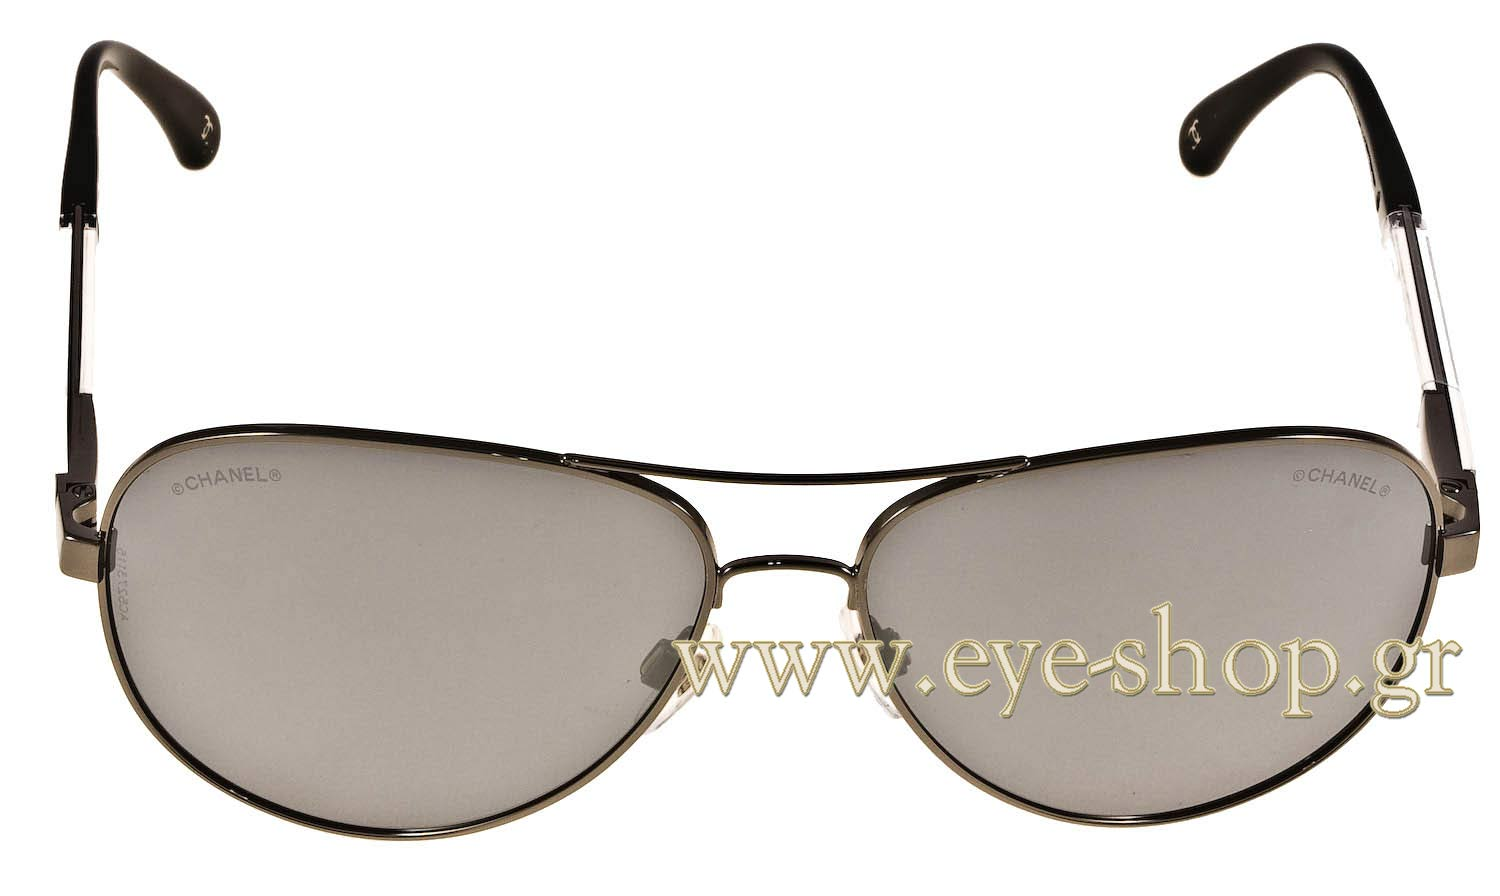 0 chanel 4179 c1084d col unisex 2016 eyeshop 2016 ver1 for Chanel collection miroir 4179